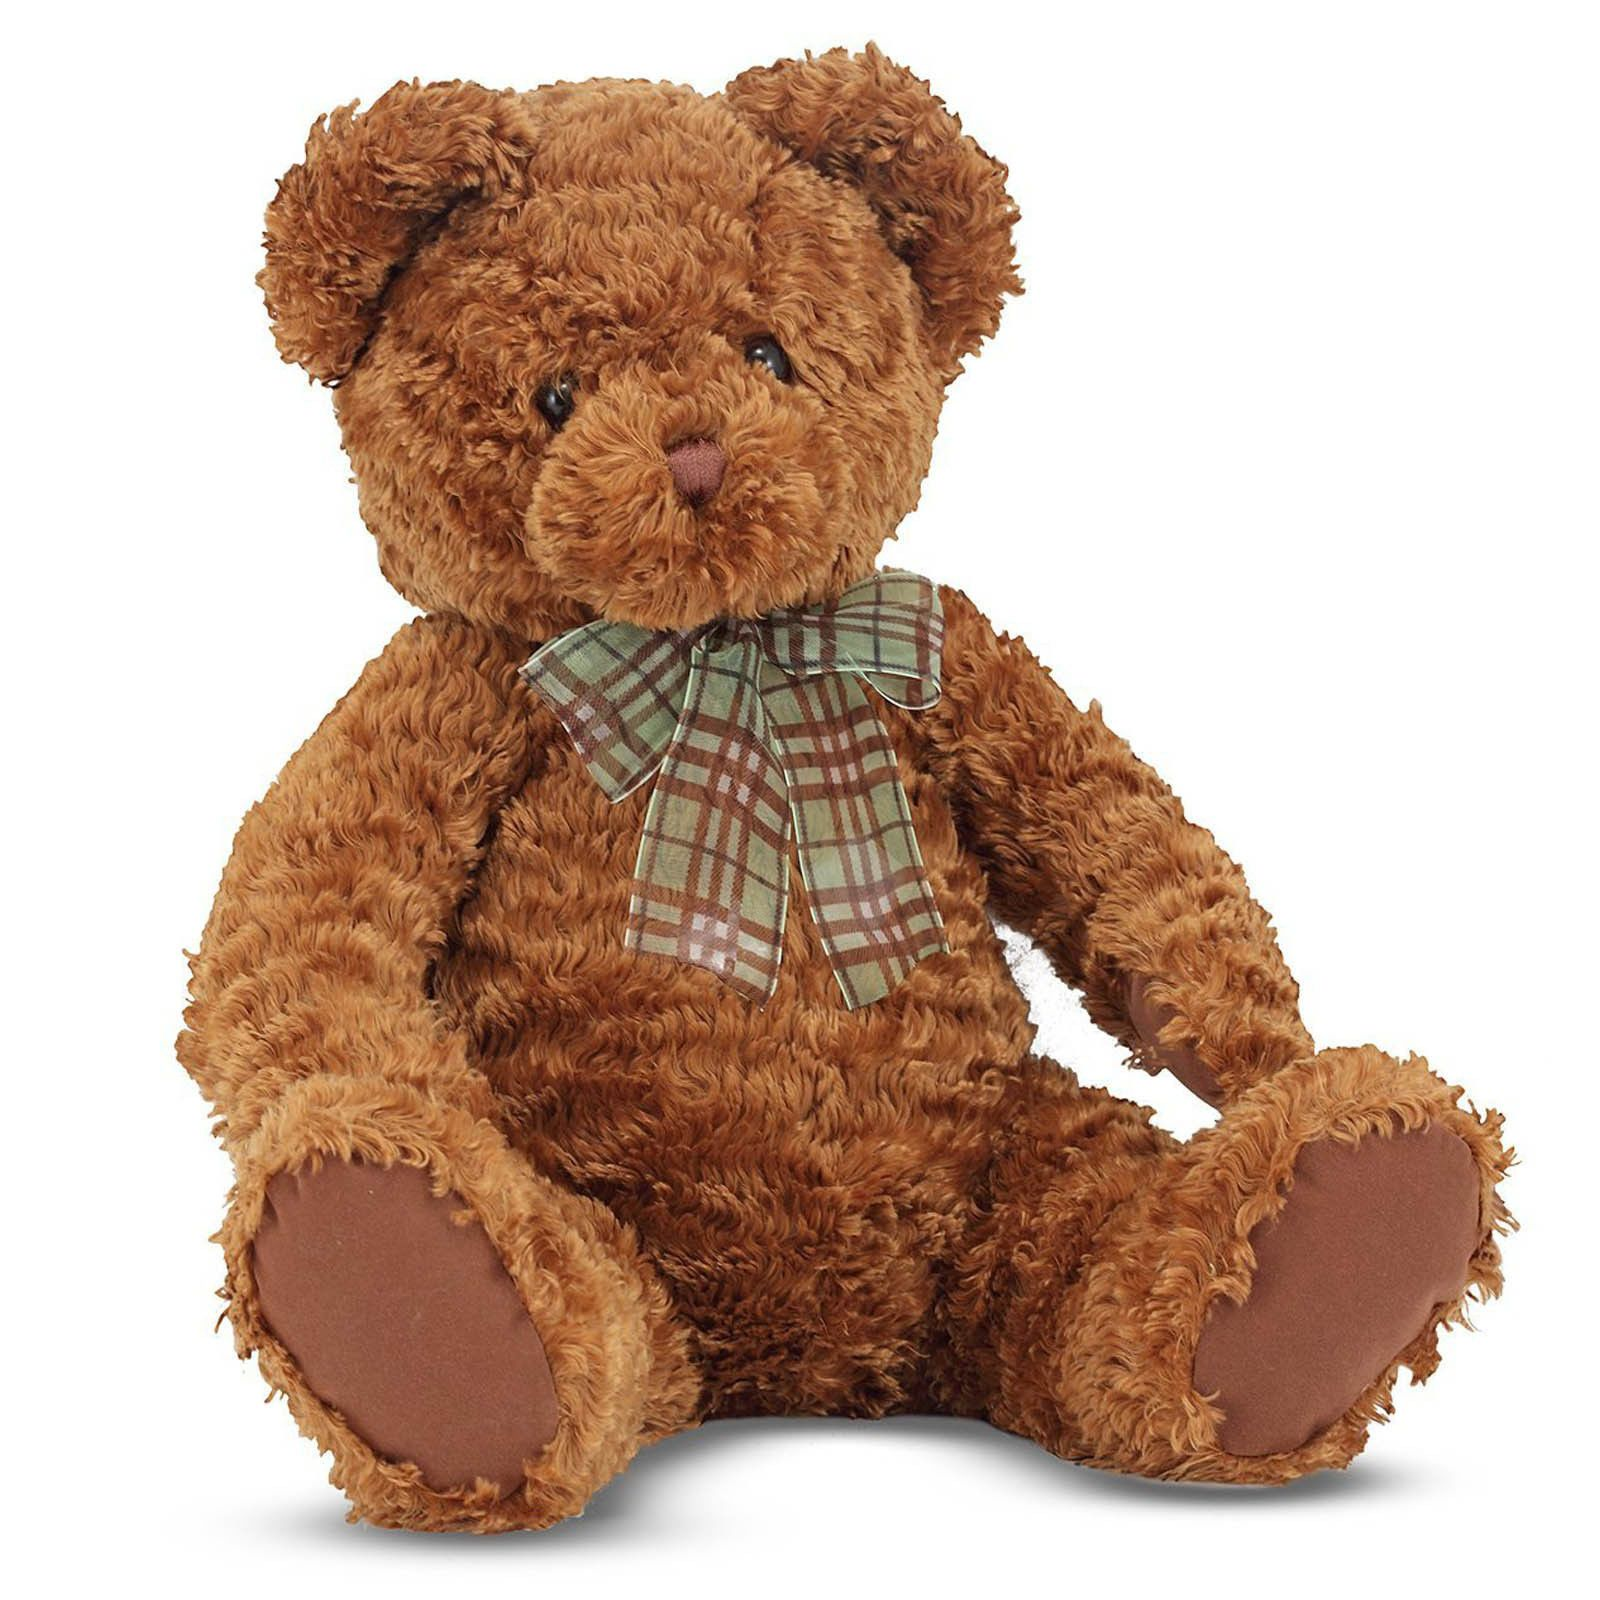 Details about Melissa And Doug Chestnut Bear 12 Inch Plush